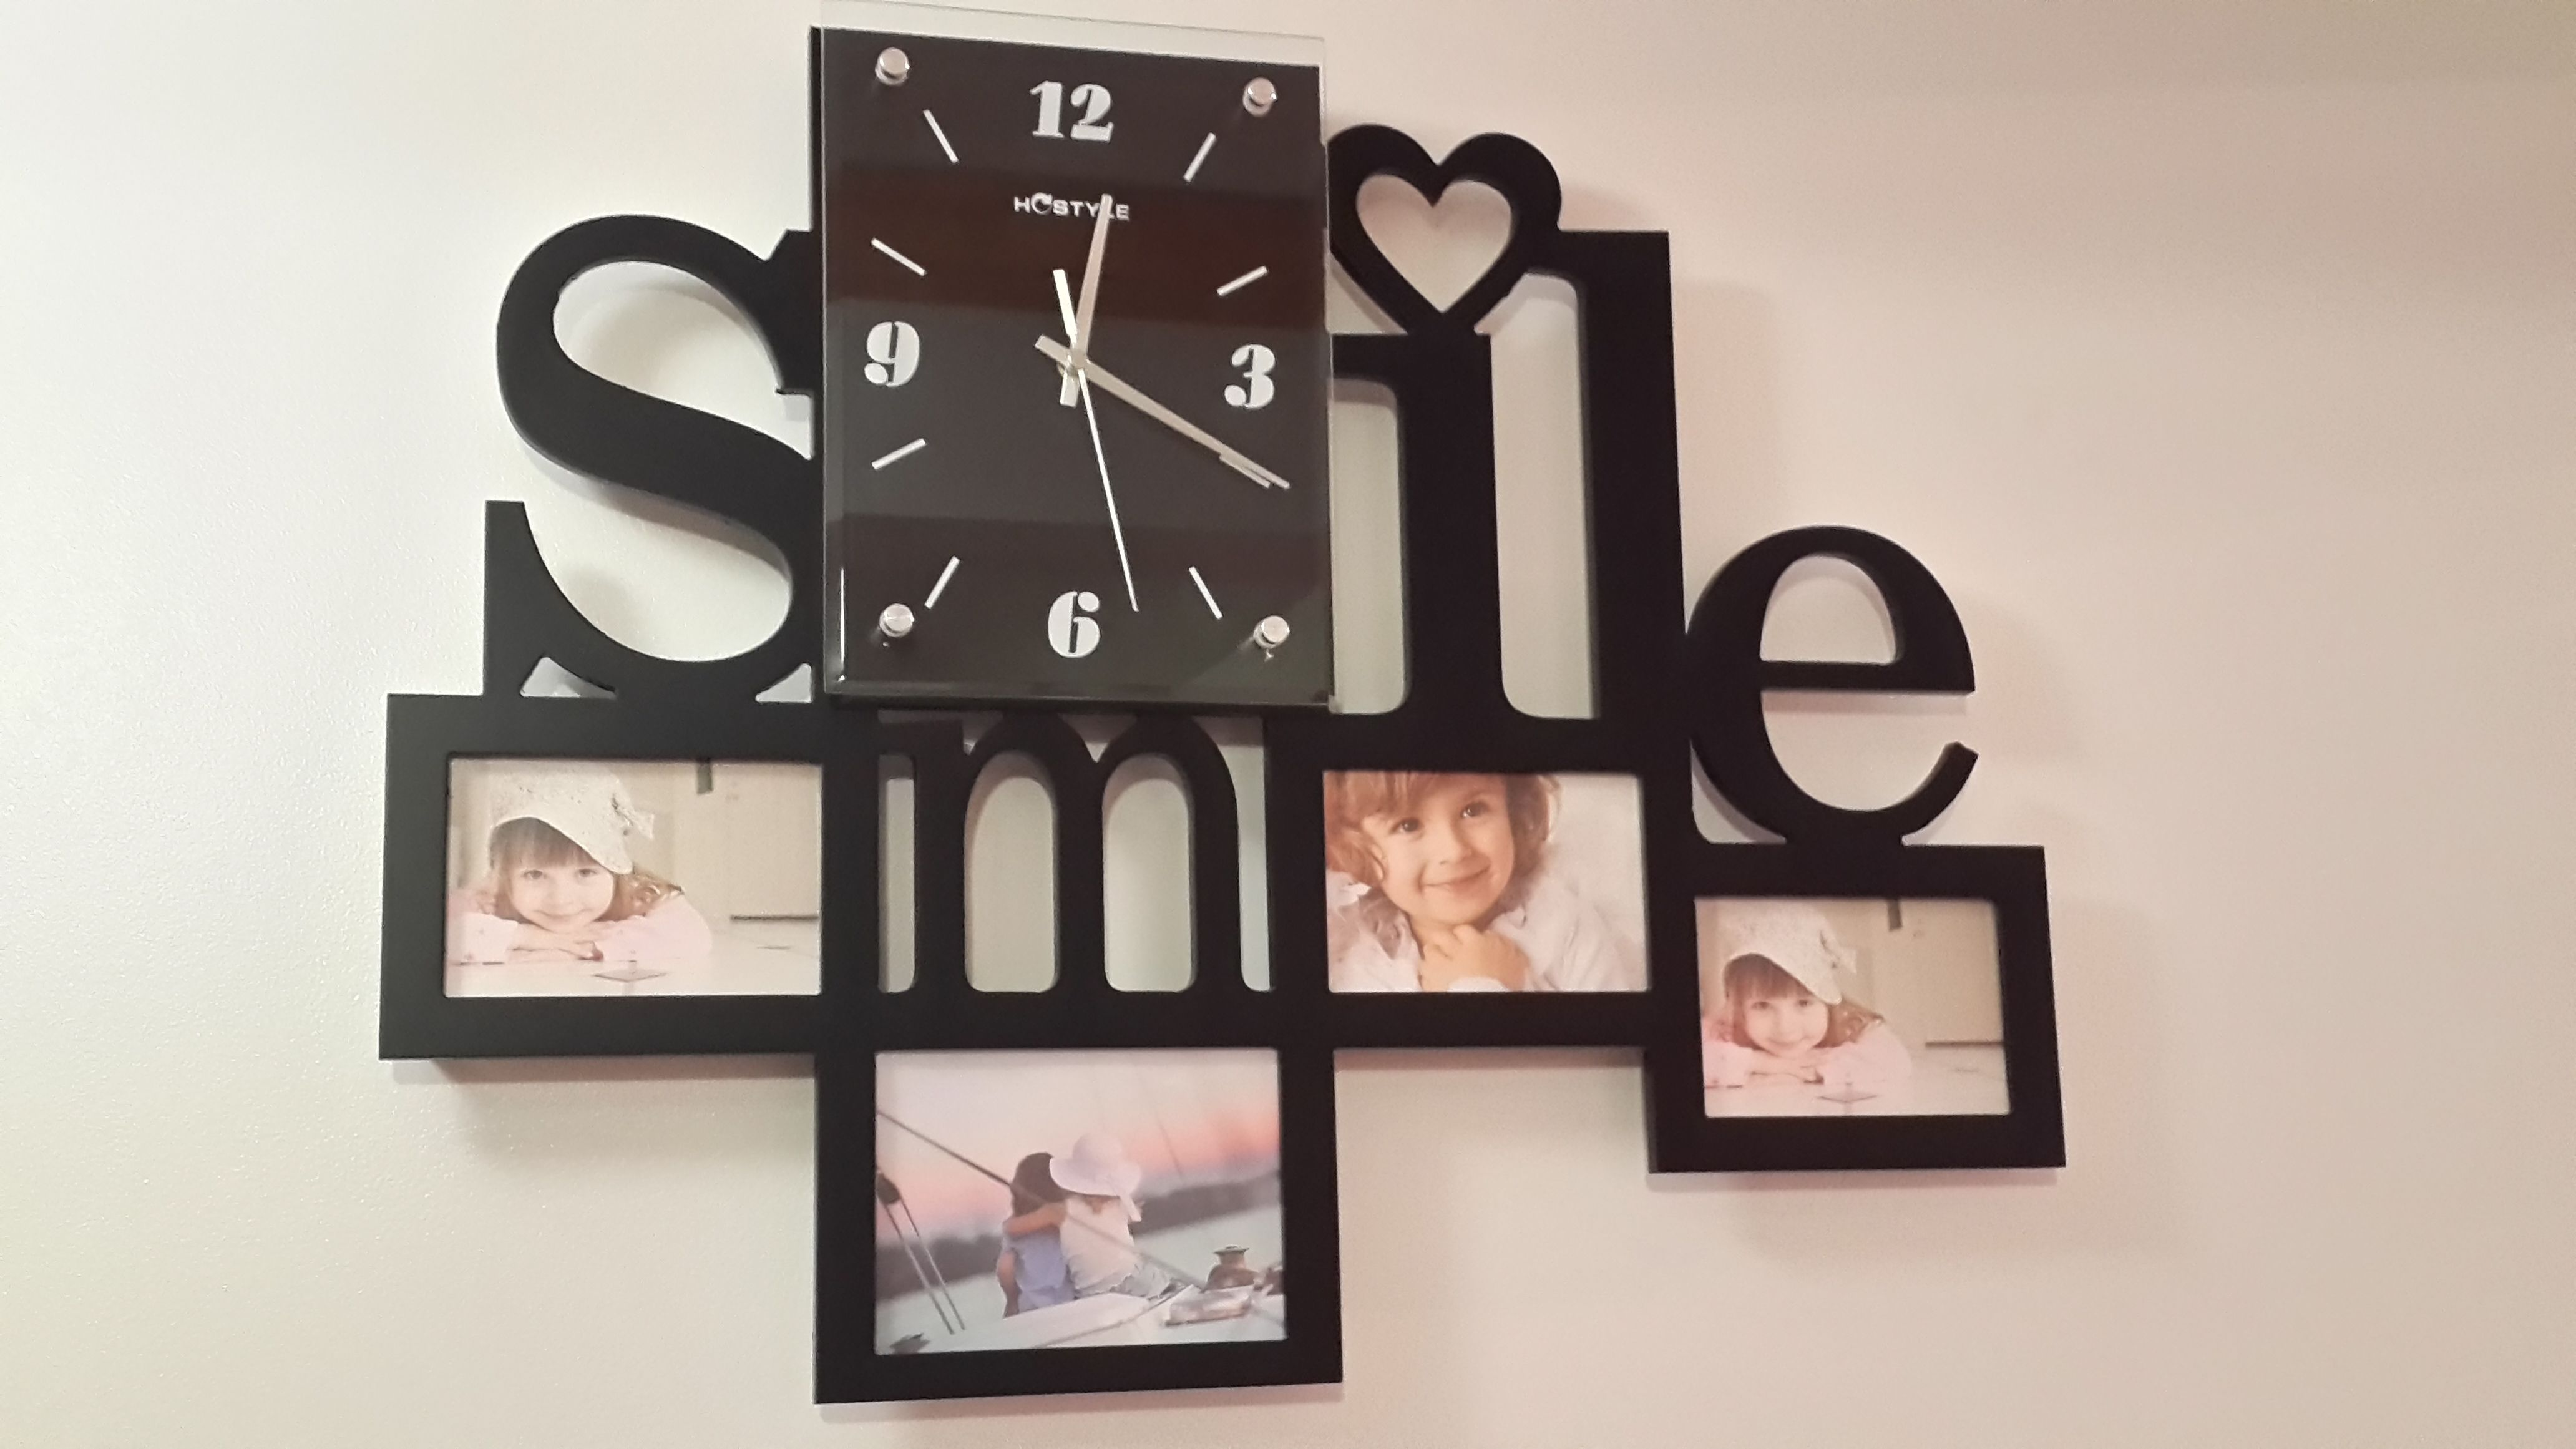 Smile photo frame wall clock modern wall clock pinterest smile photo frame wall clock jeuxipadfo Images